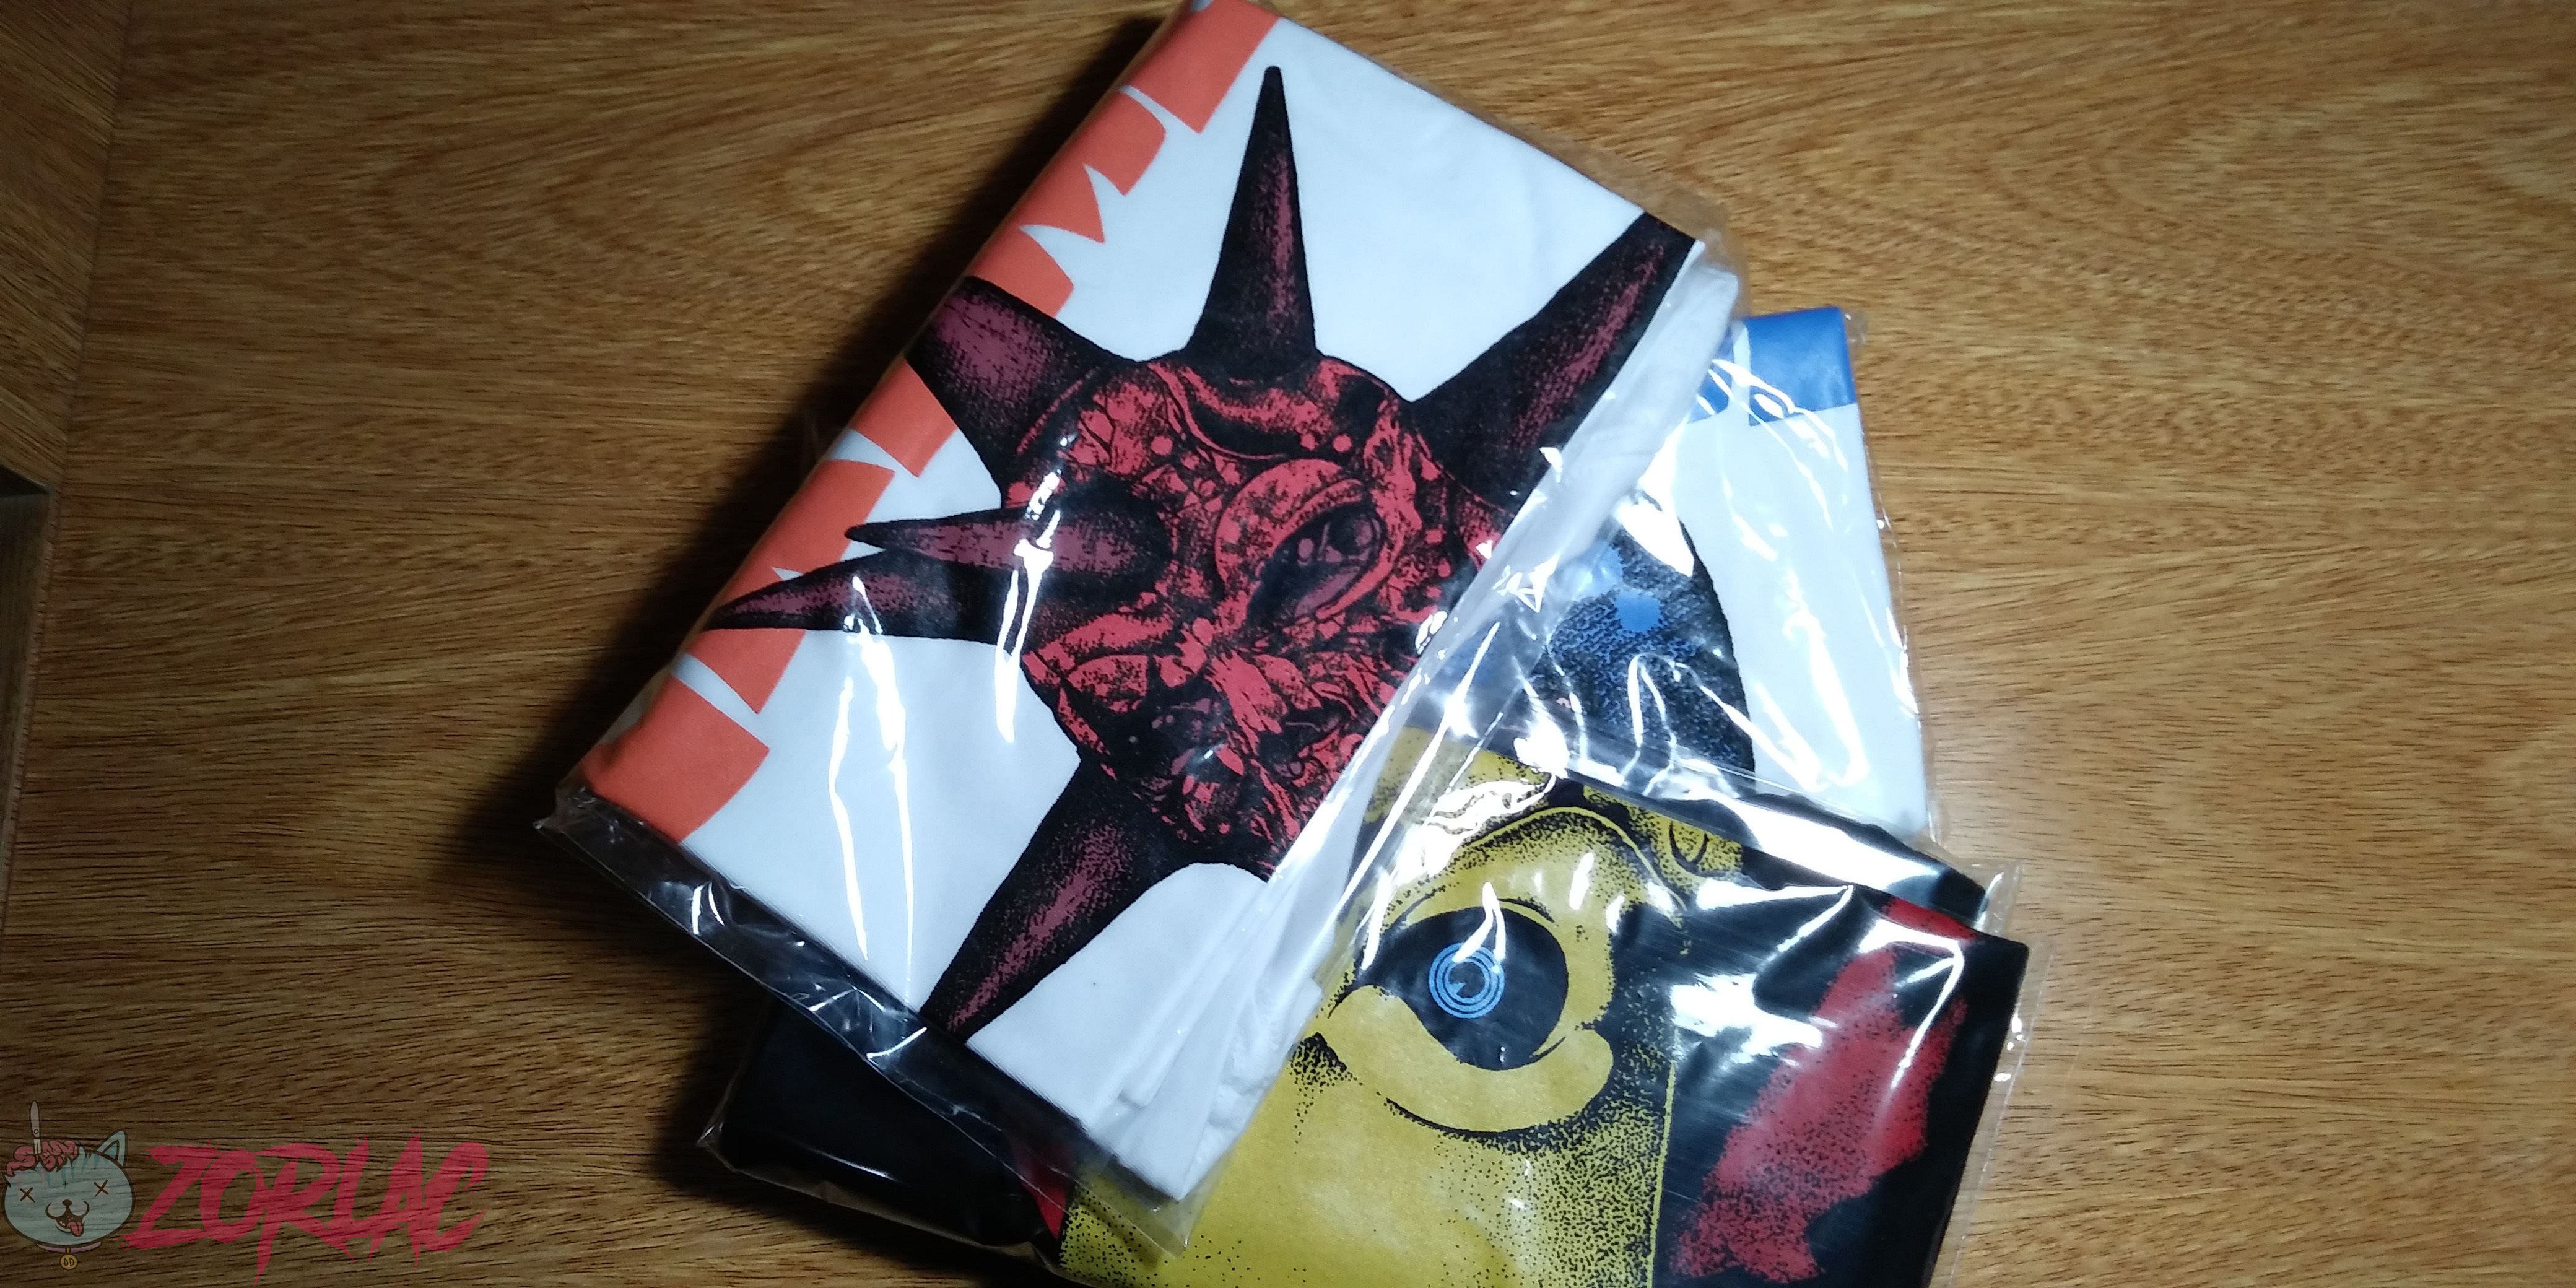 Remeras Crime: Cyber Monday 3x2 [unboxing]